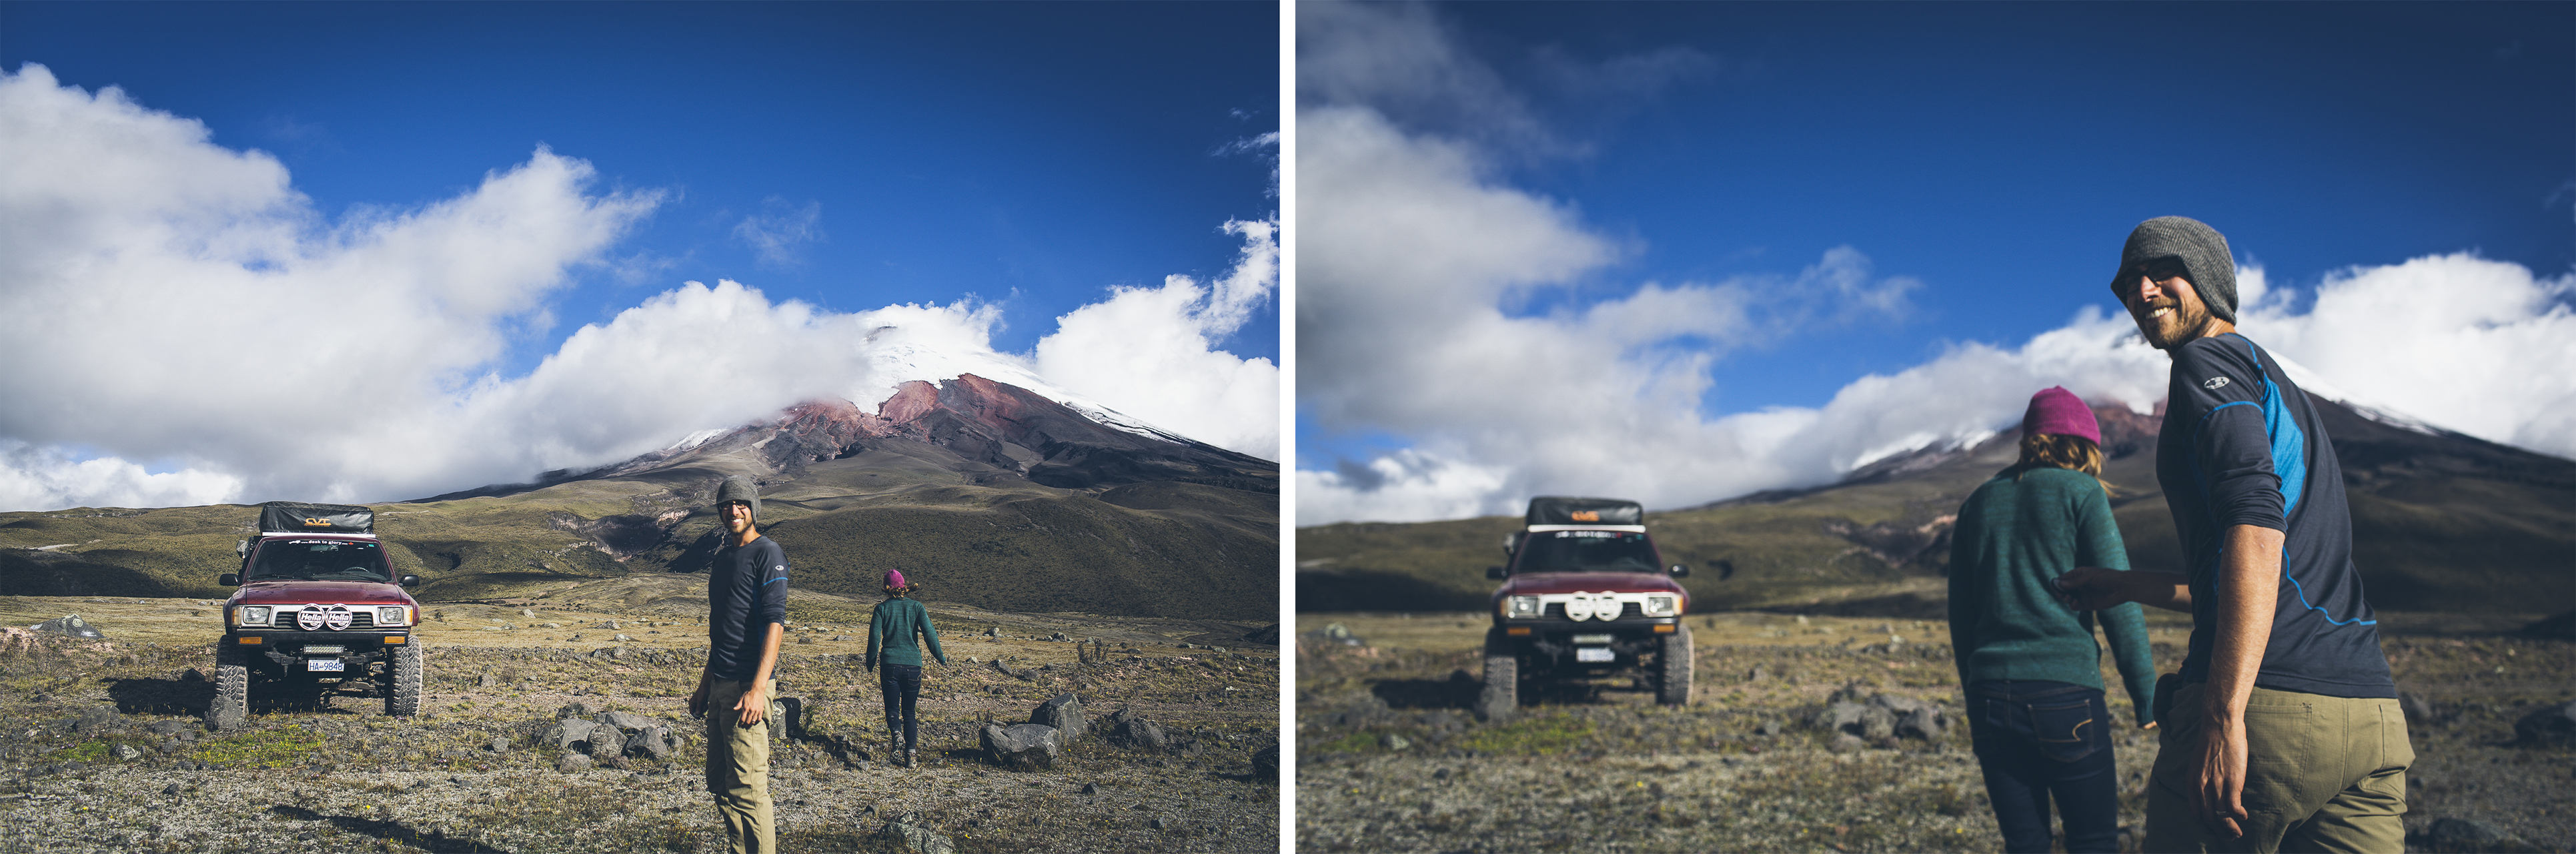 desktoglory_cotopaxi-19 copy